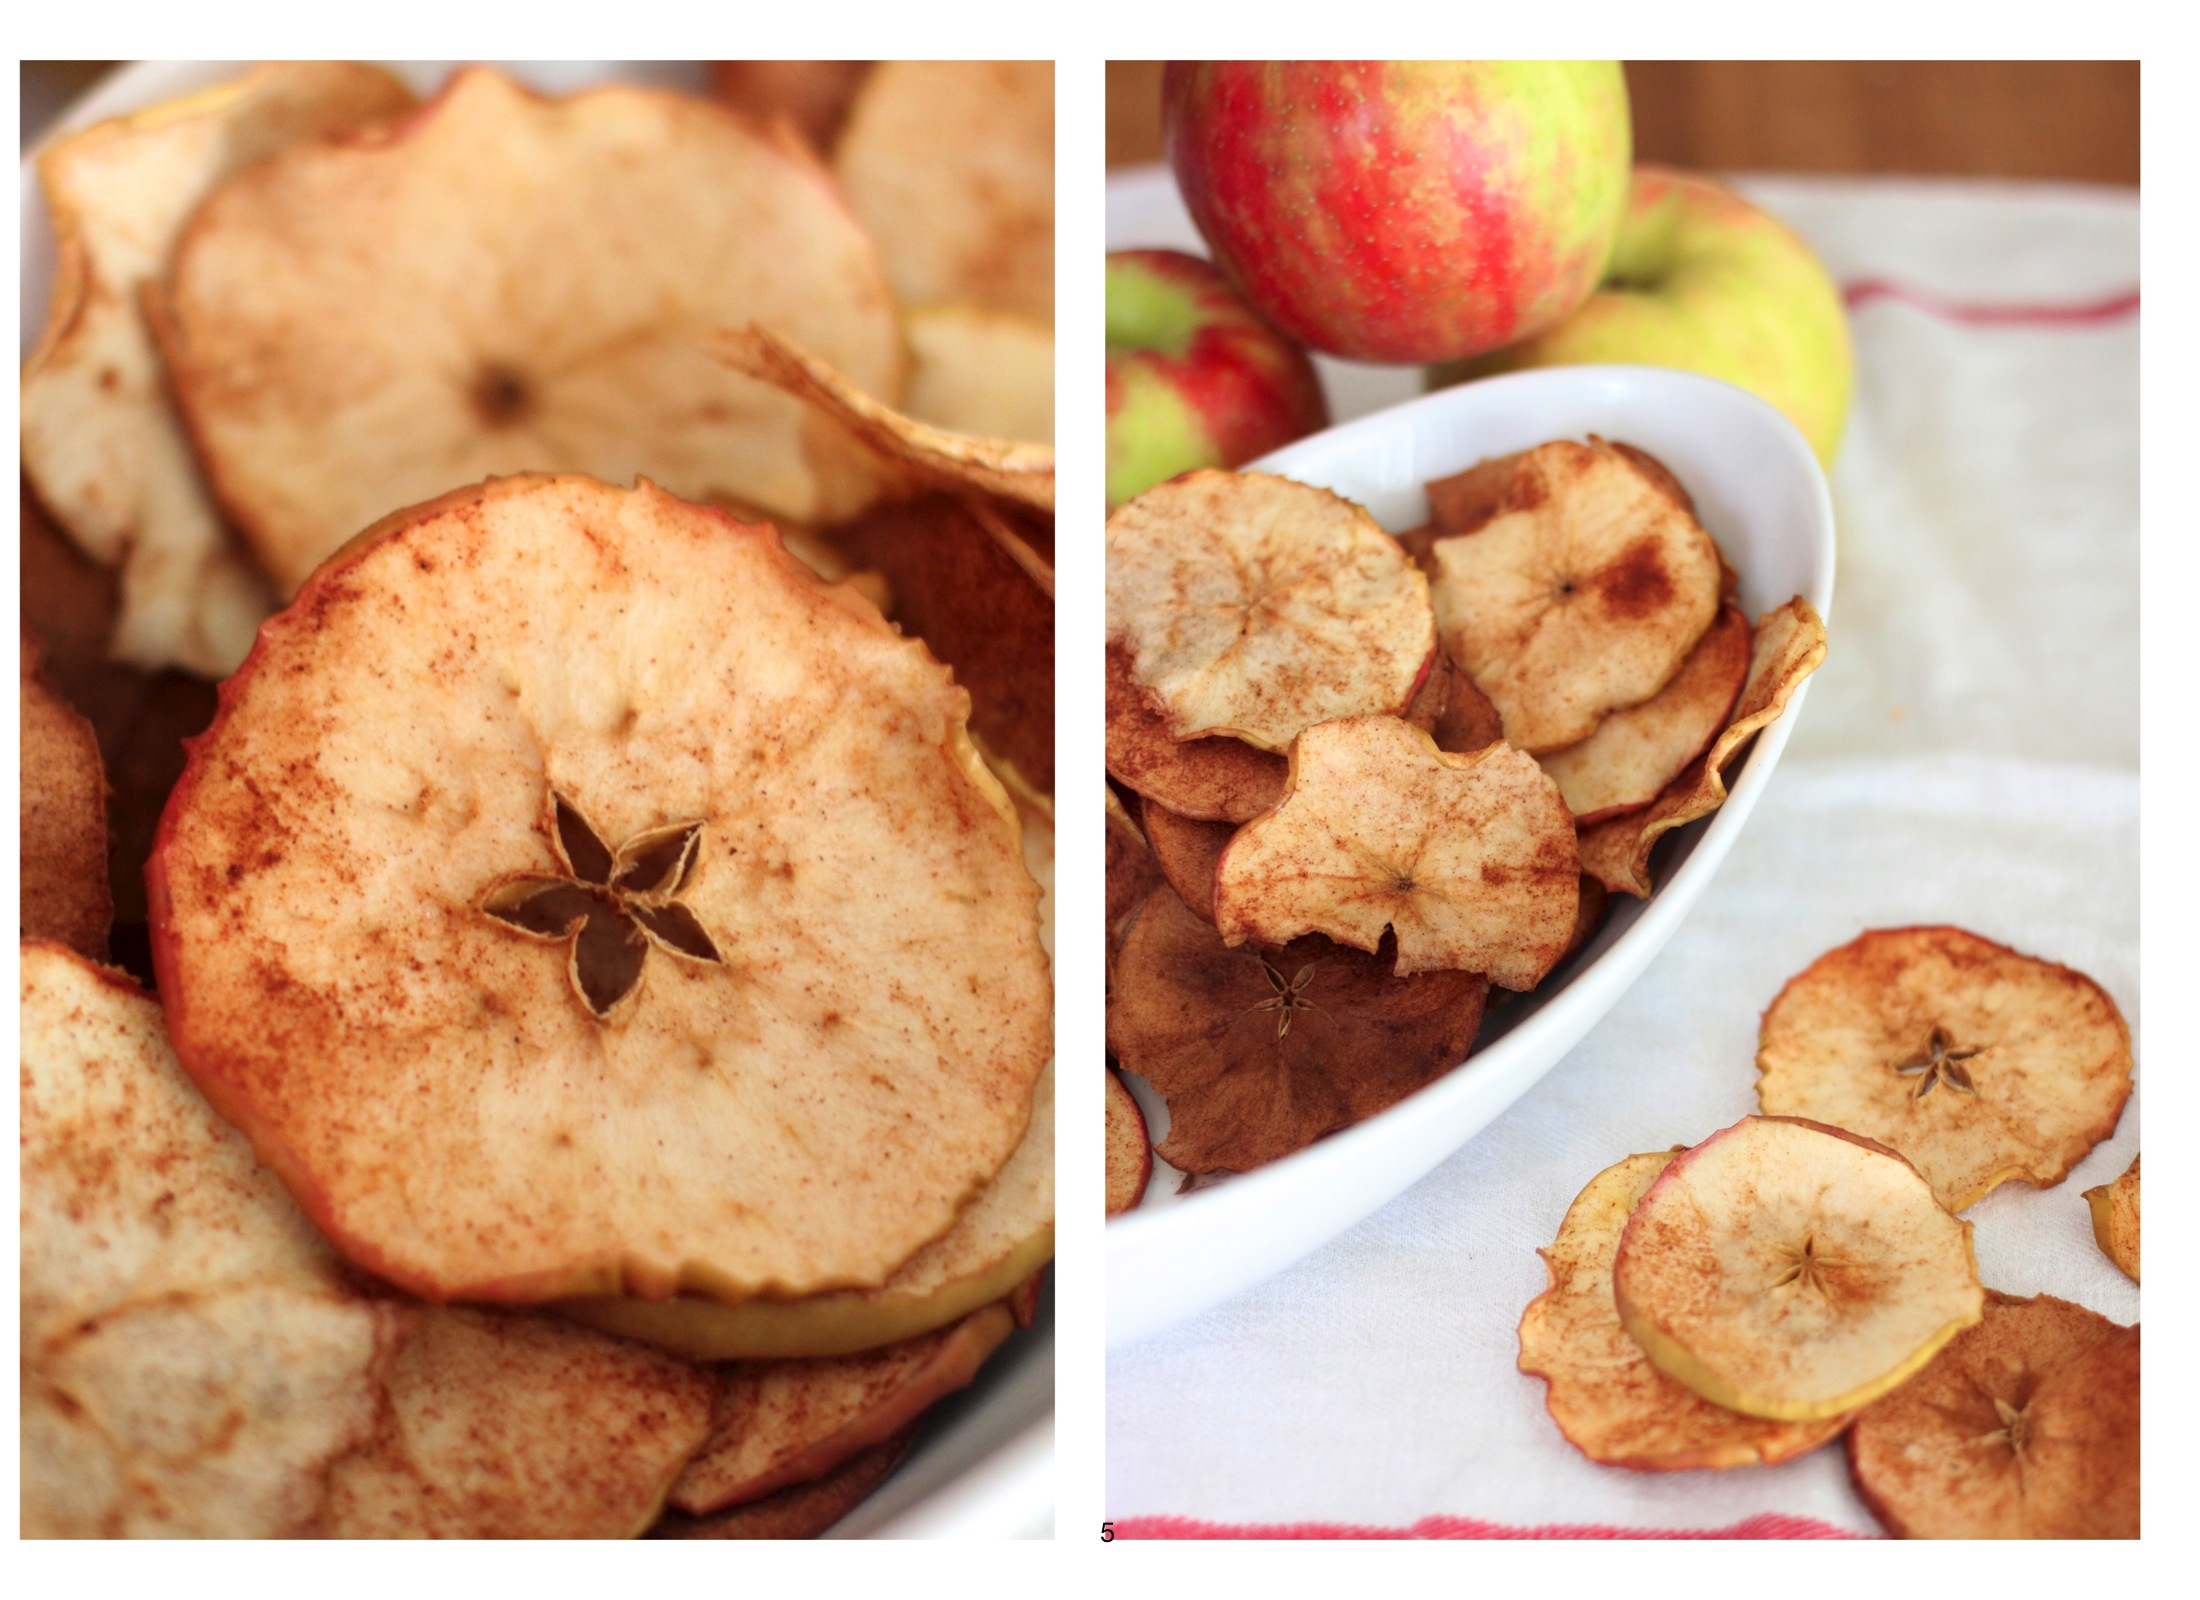 baking with kids: apple chips